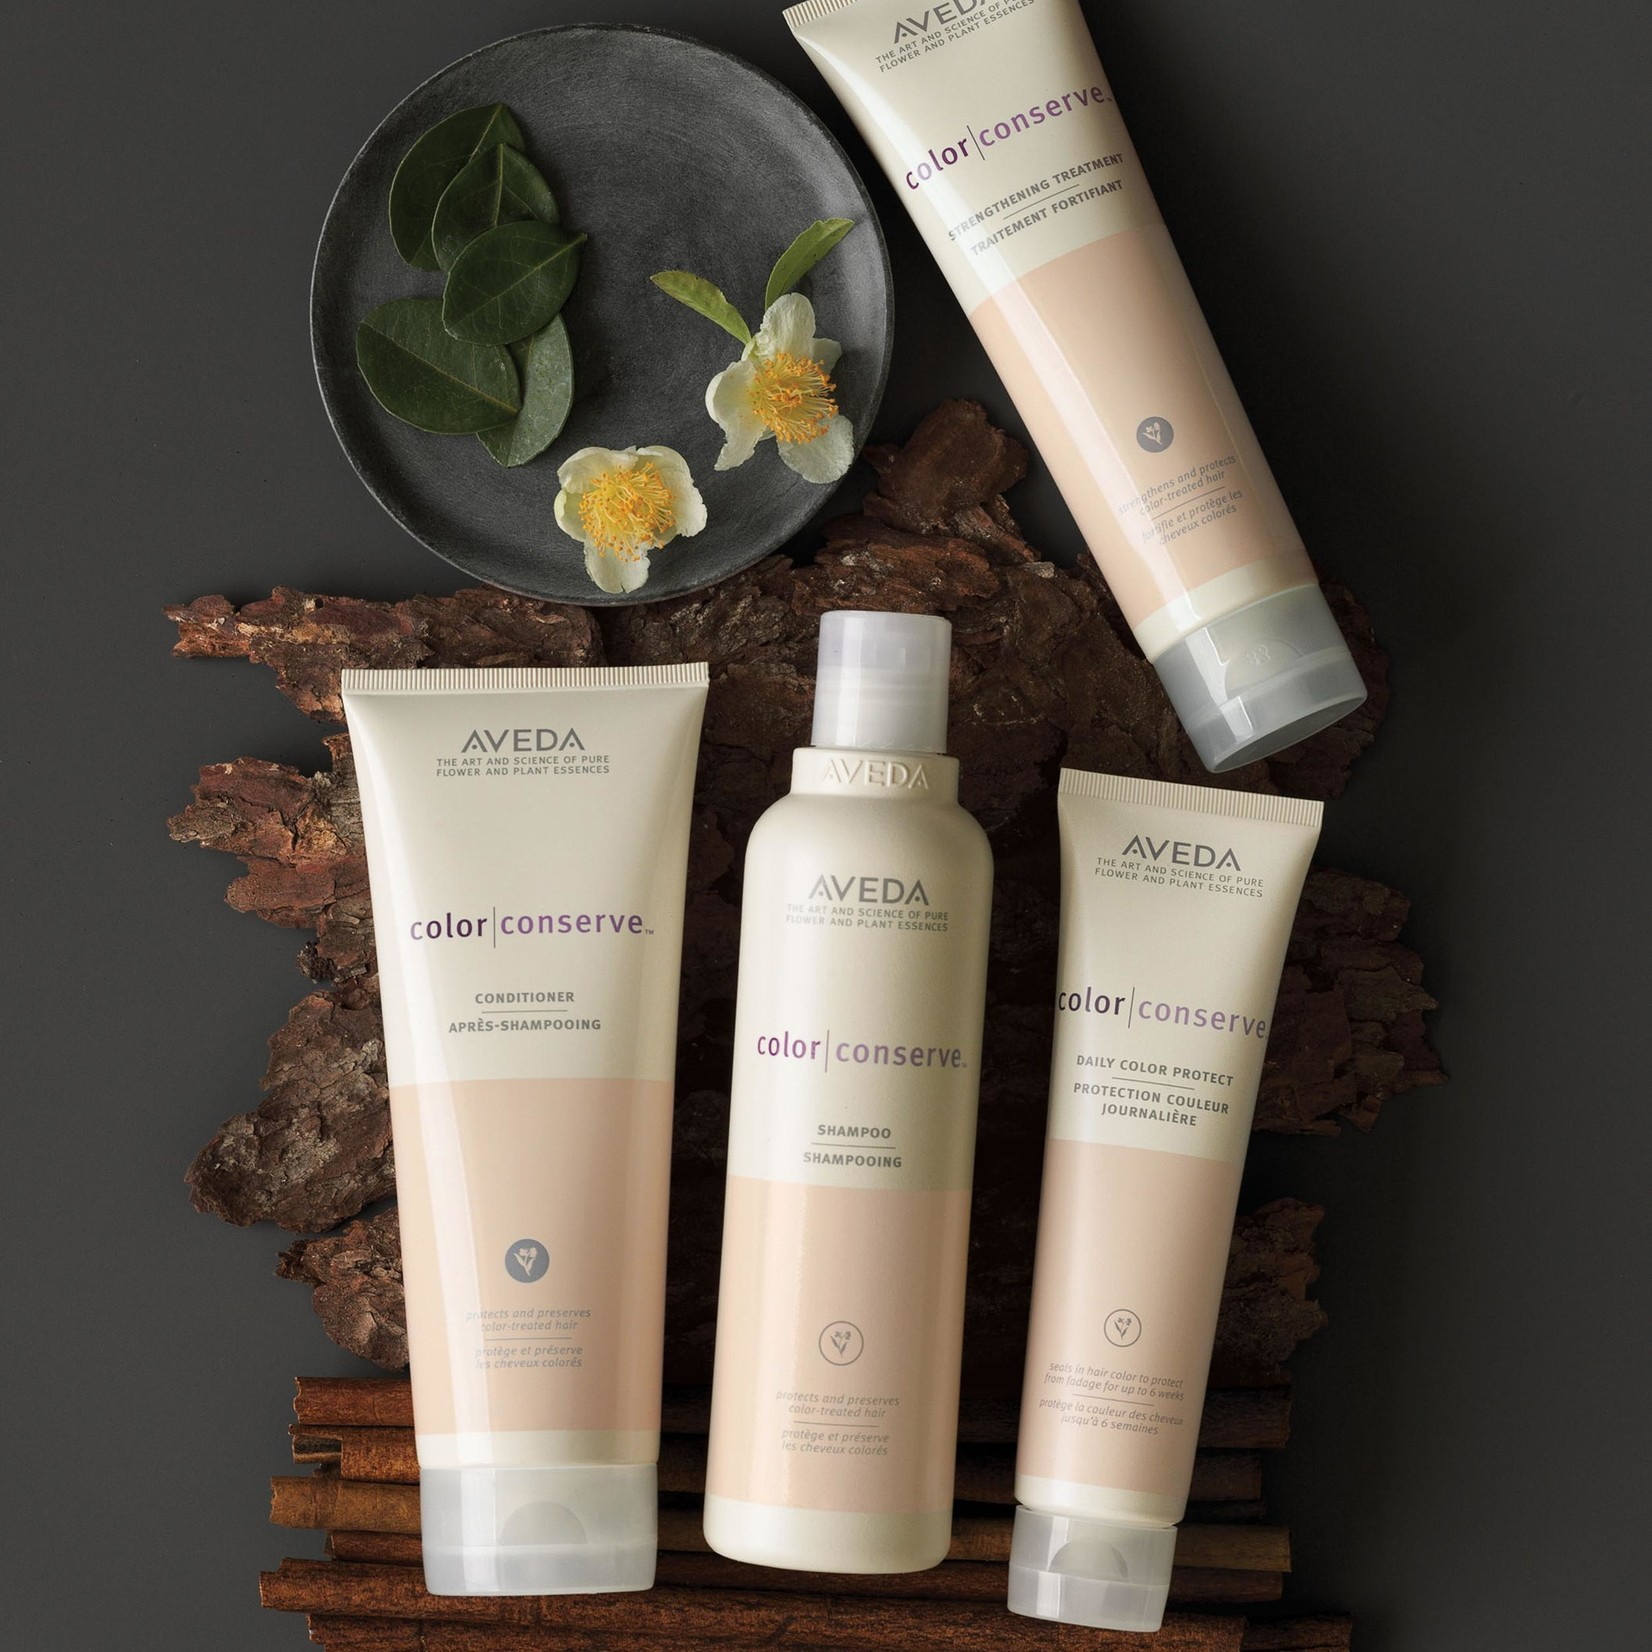 AVEDA Color Conserve™ Daily Color Protect